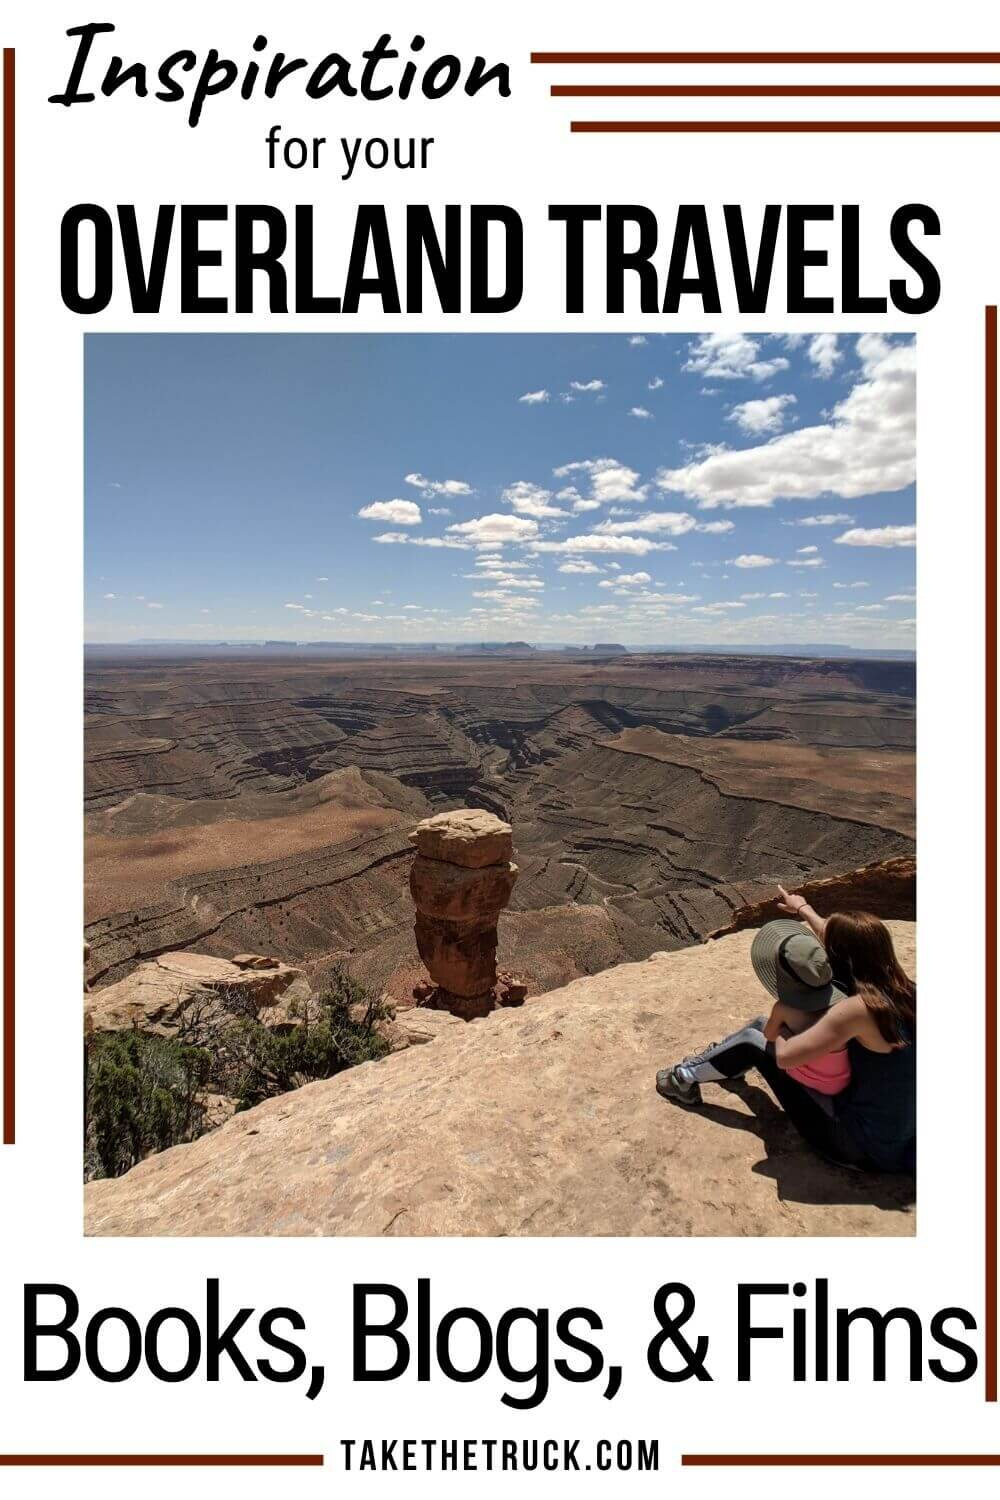 A list of overlanding ideas from books, blogs, and films made by full time overlanding families and other overlanding travelers. Full of overlanding destinations & routes and overlanding pictures.